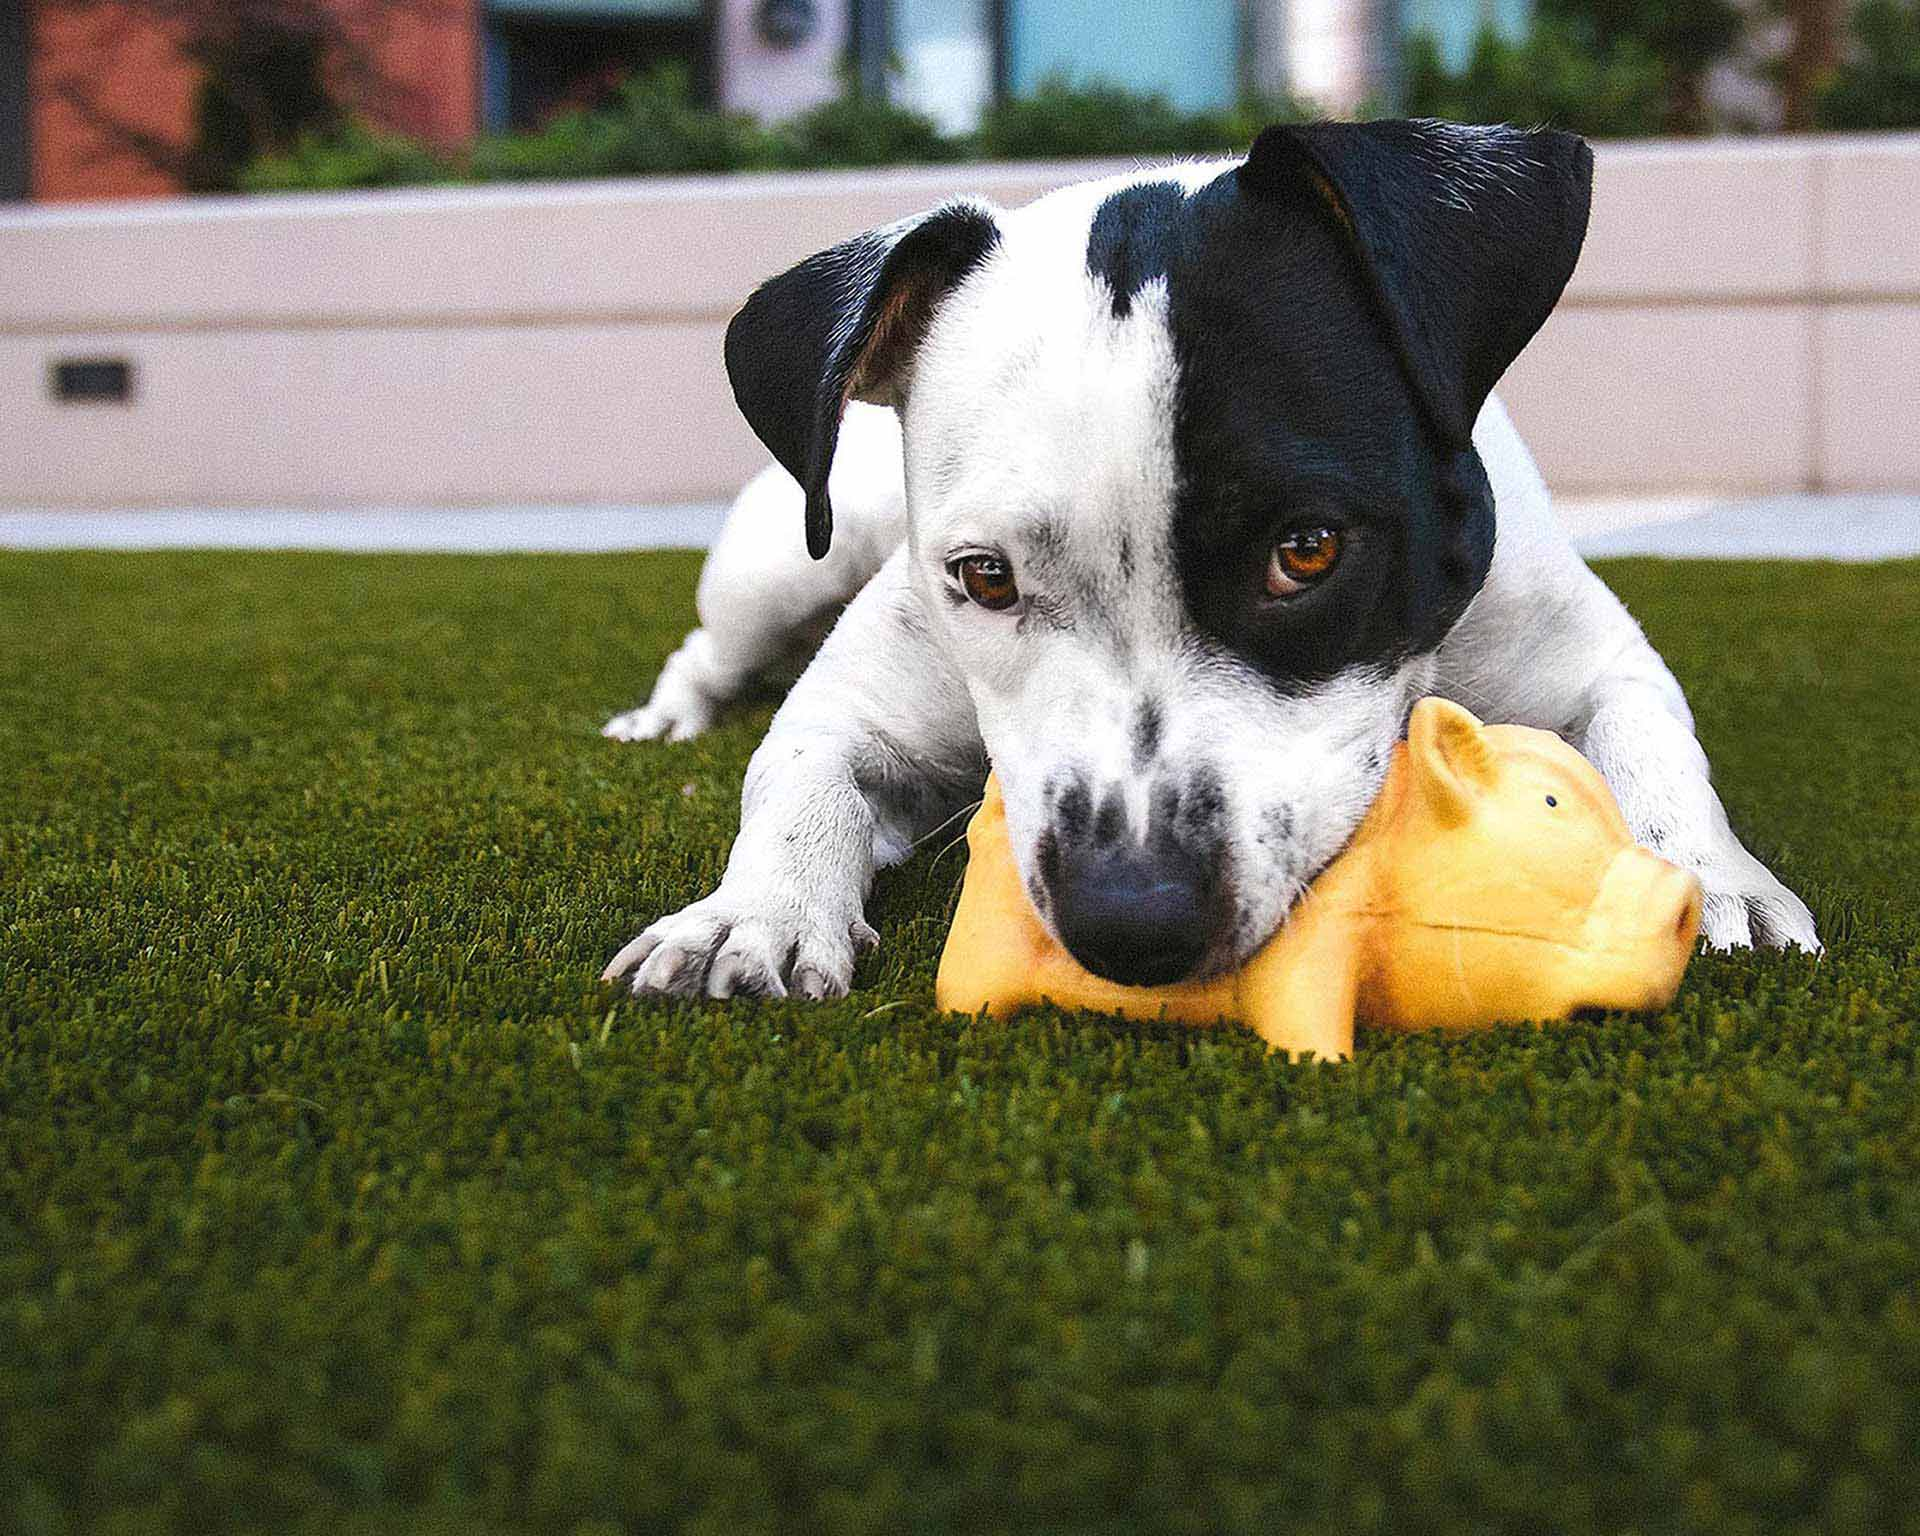 black and white puppy with yellow toy pig in dog run